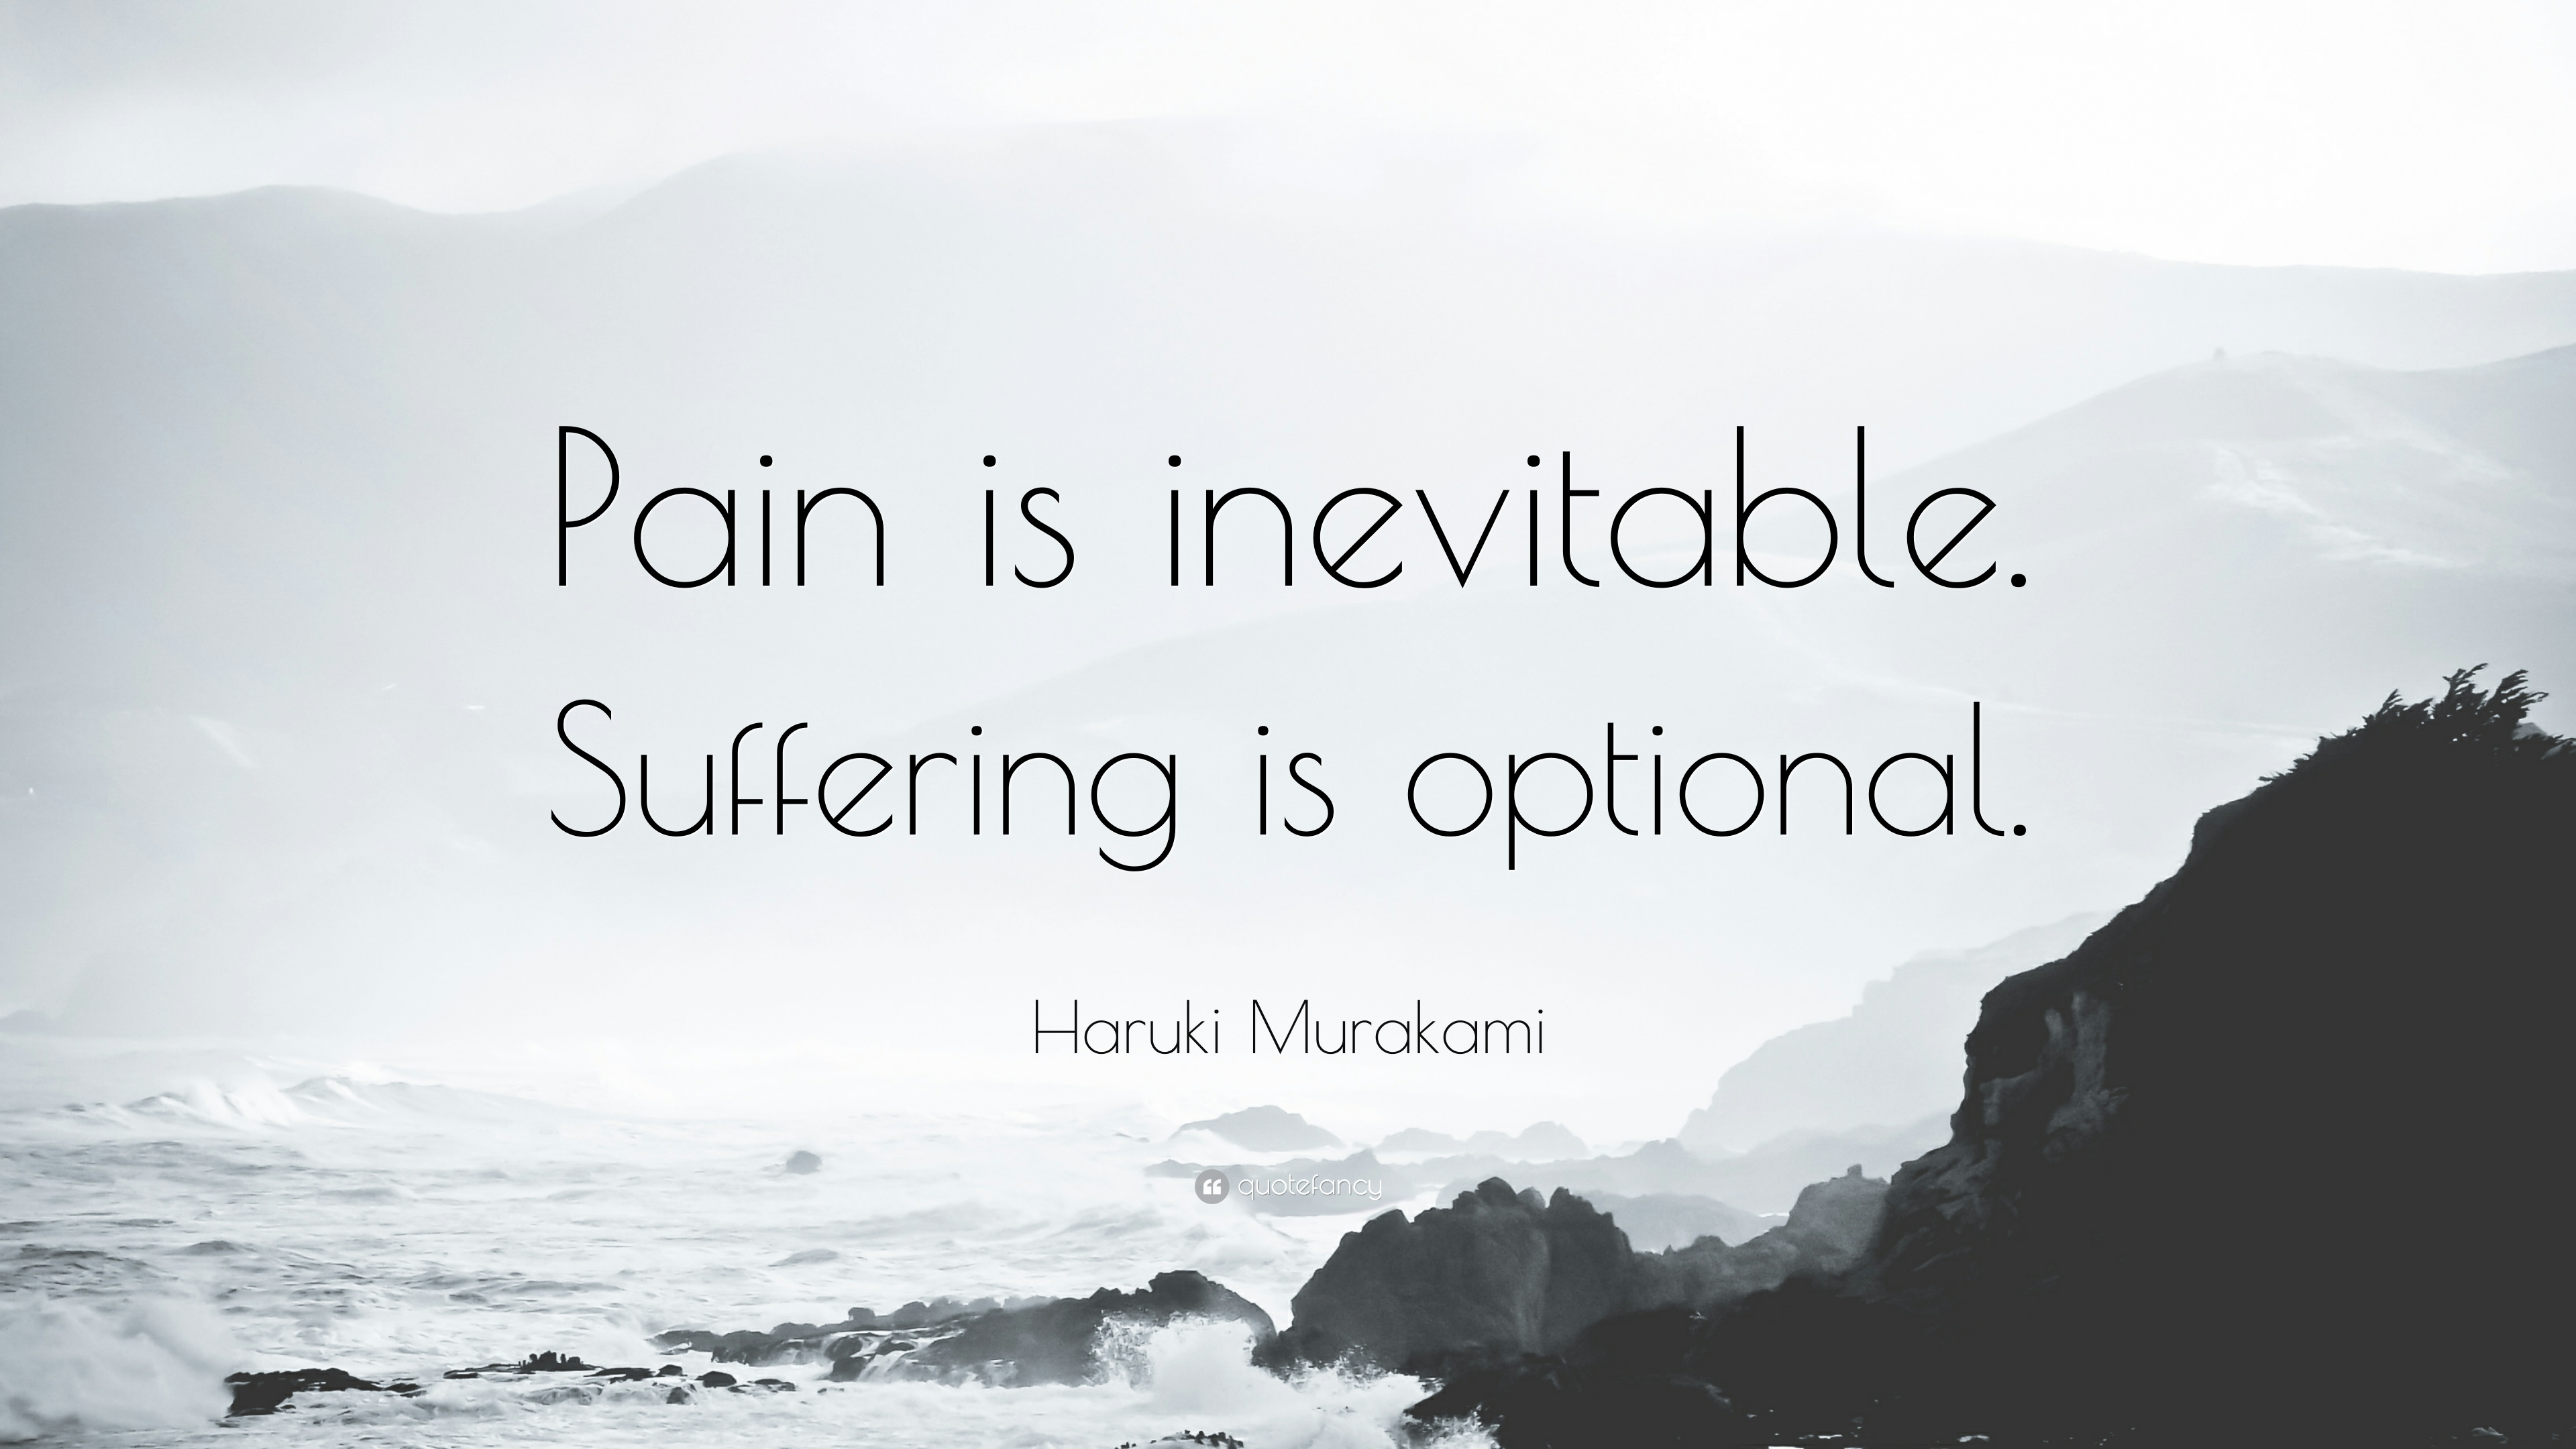 [Image] Pain is Inevitable, suffering is optional